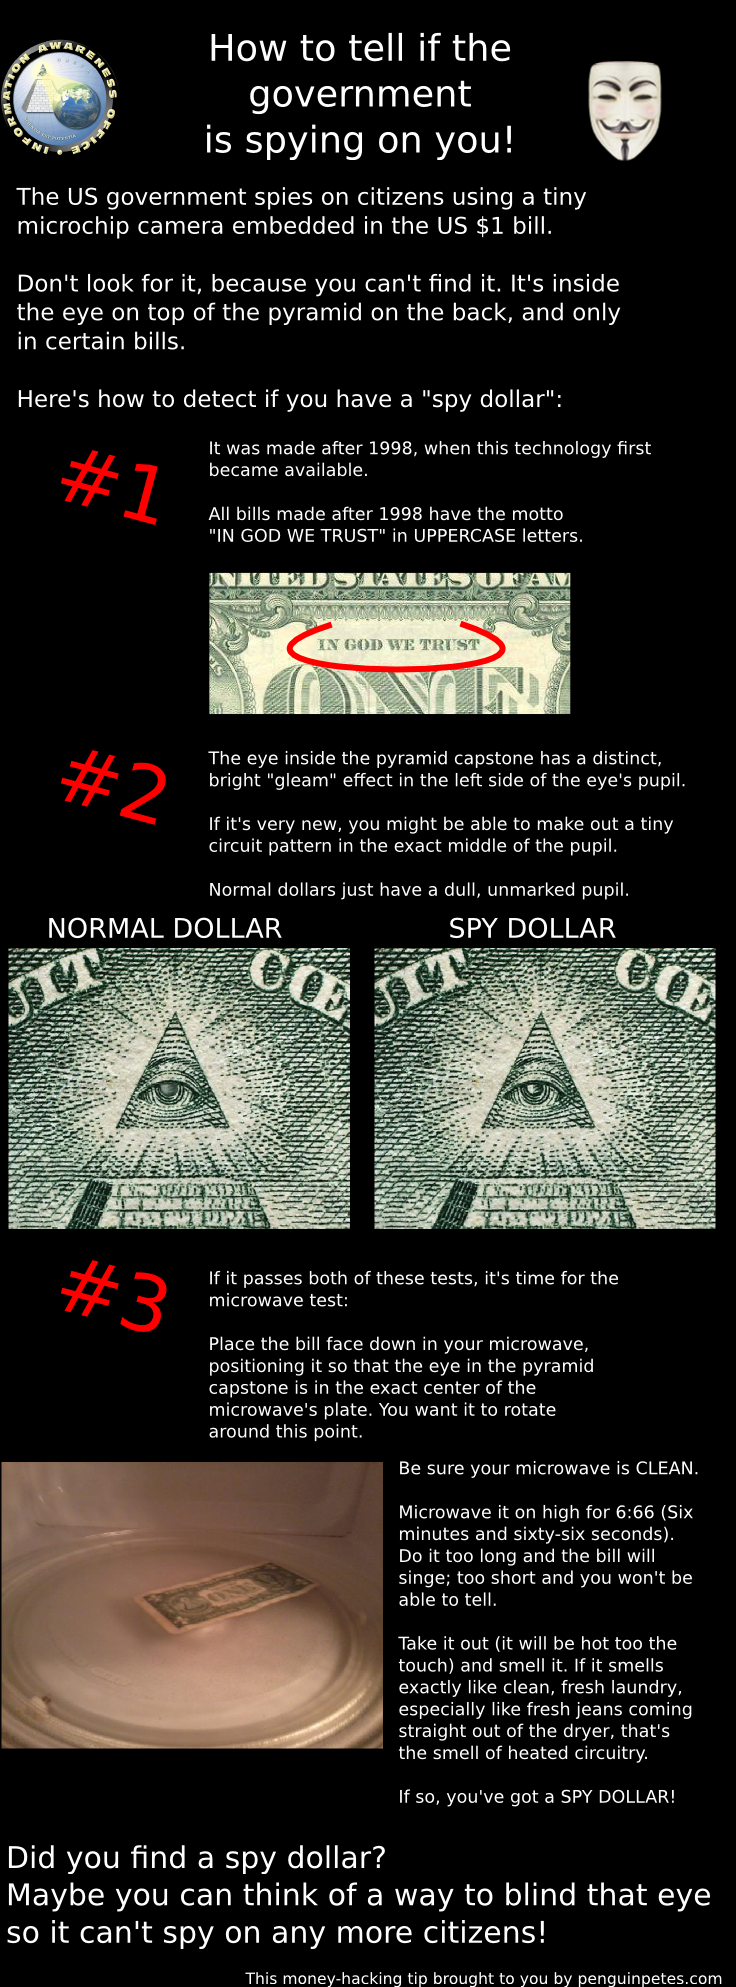 How to find a spy dollar.